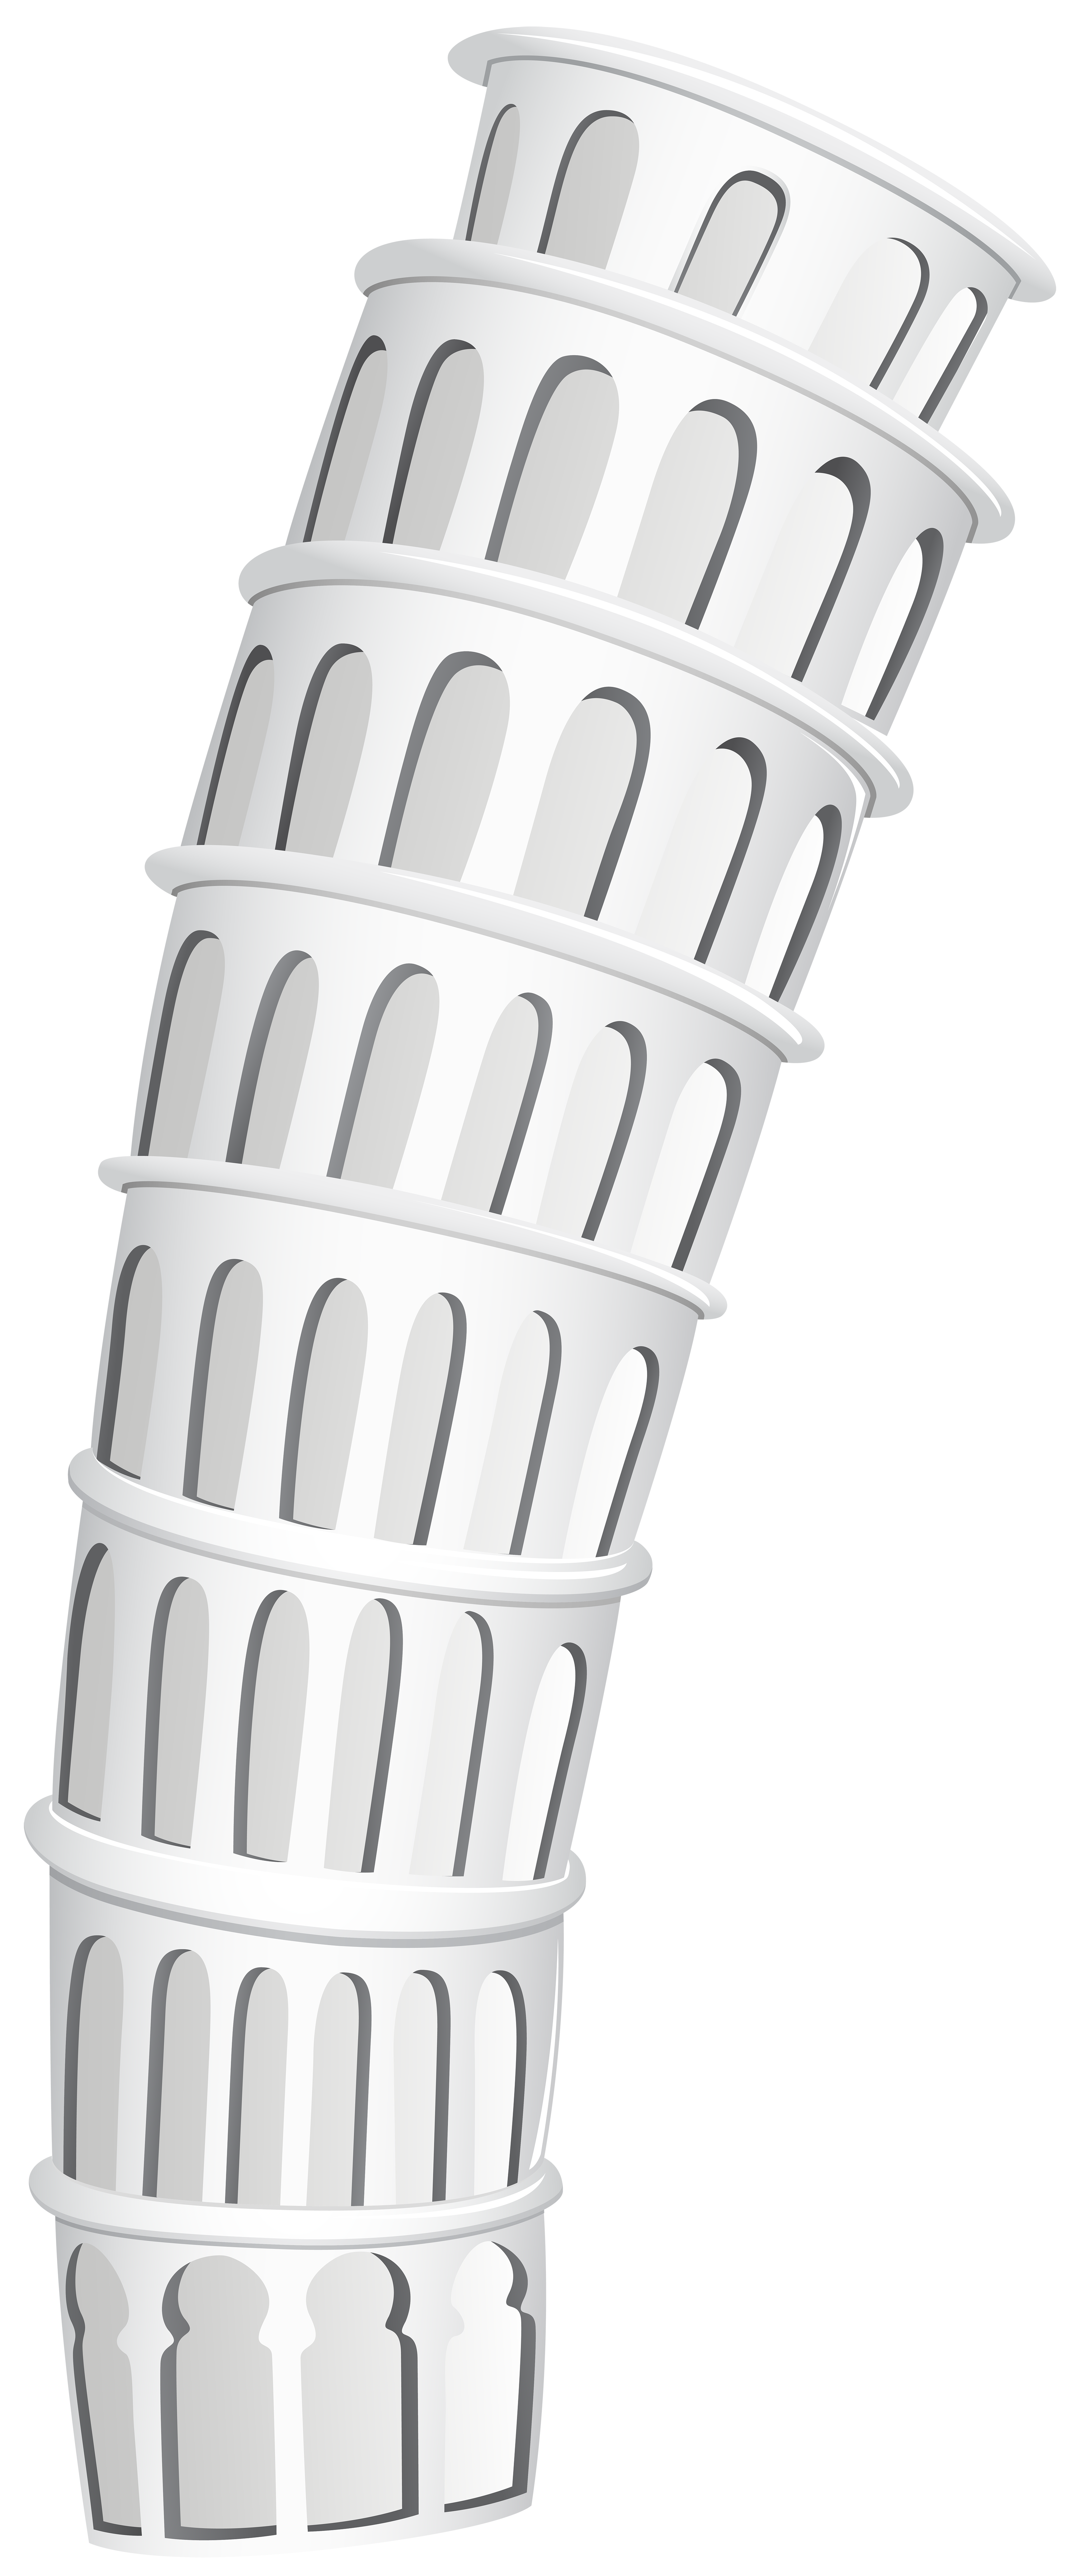 Tower clipart pisa clipart. Leaning of png clip